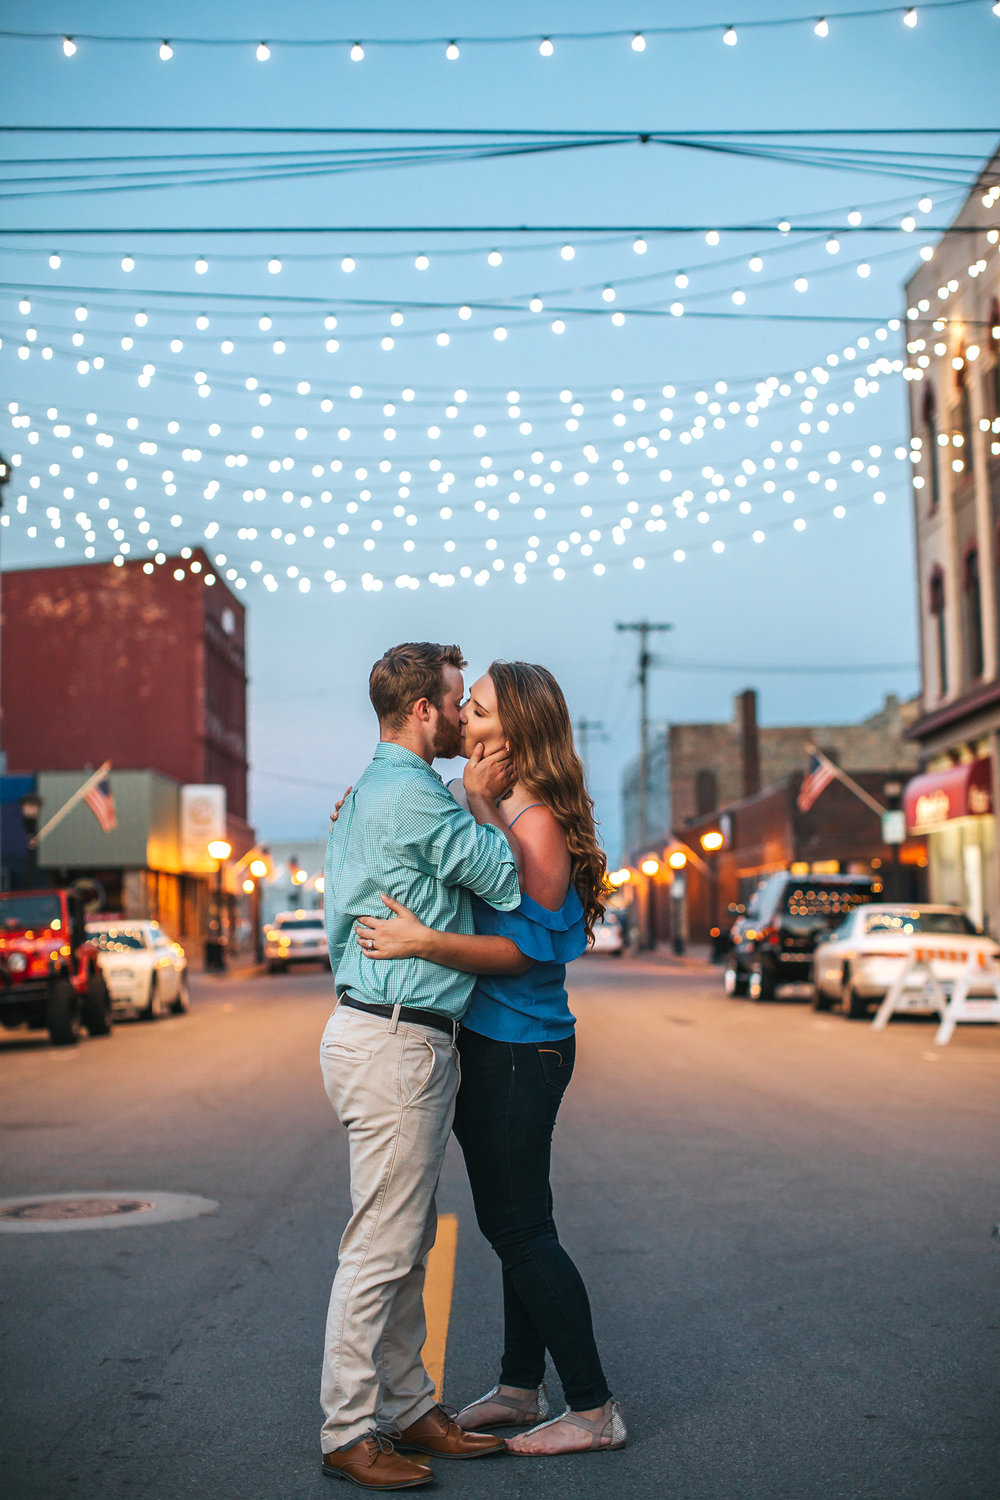 bay_city_downtown_engagement_session_pop_mod_photo_breanna_christopher_59.jpg